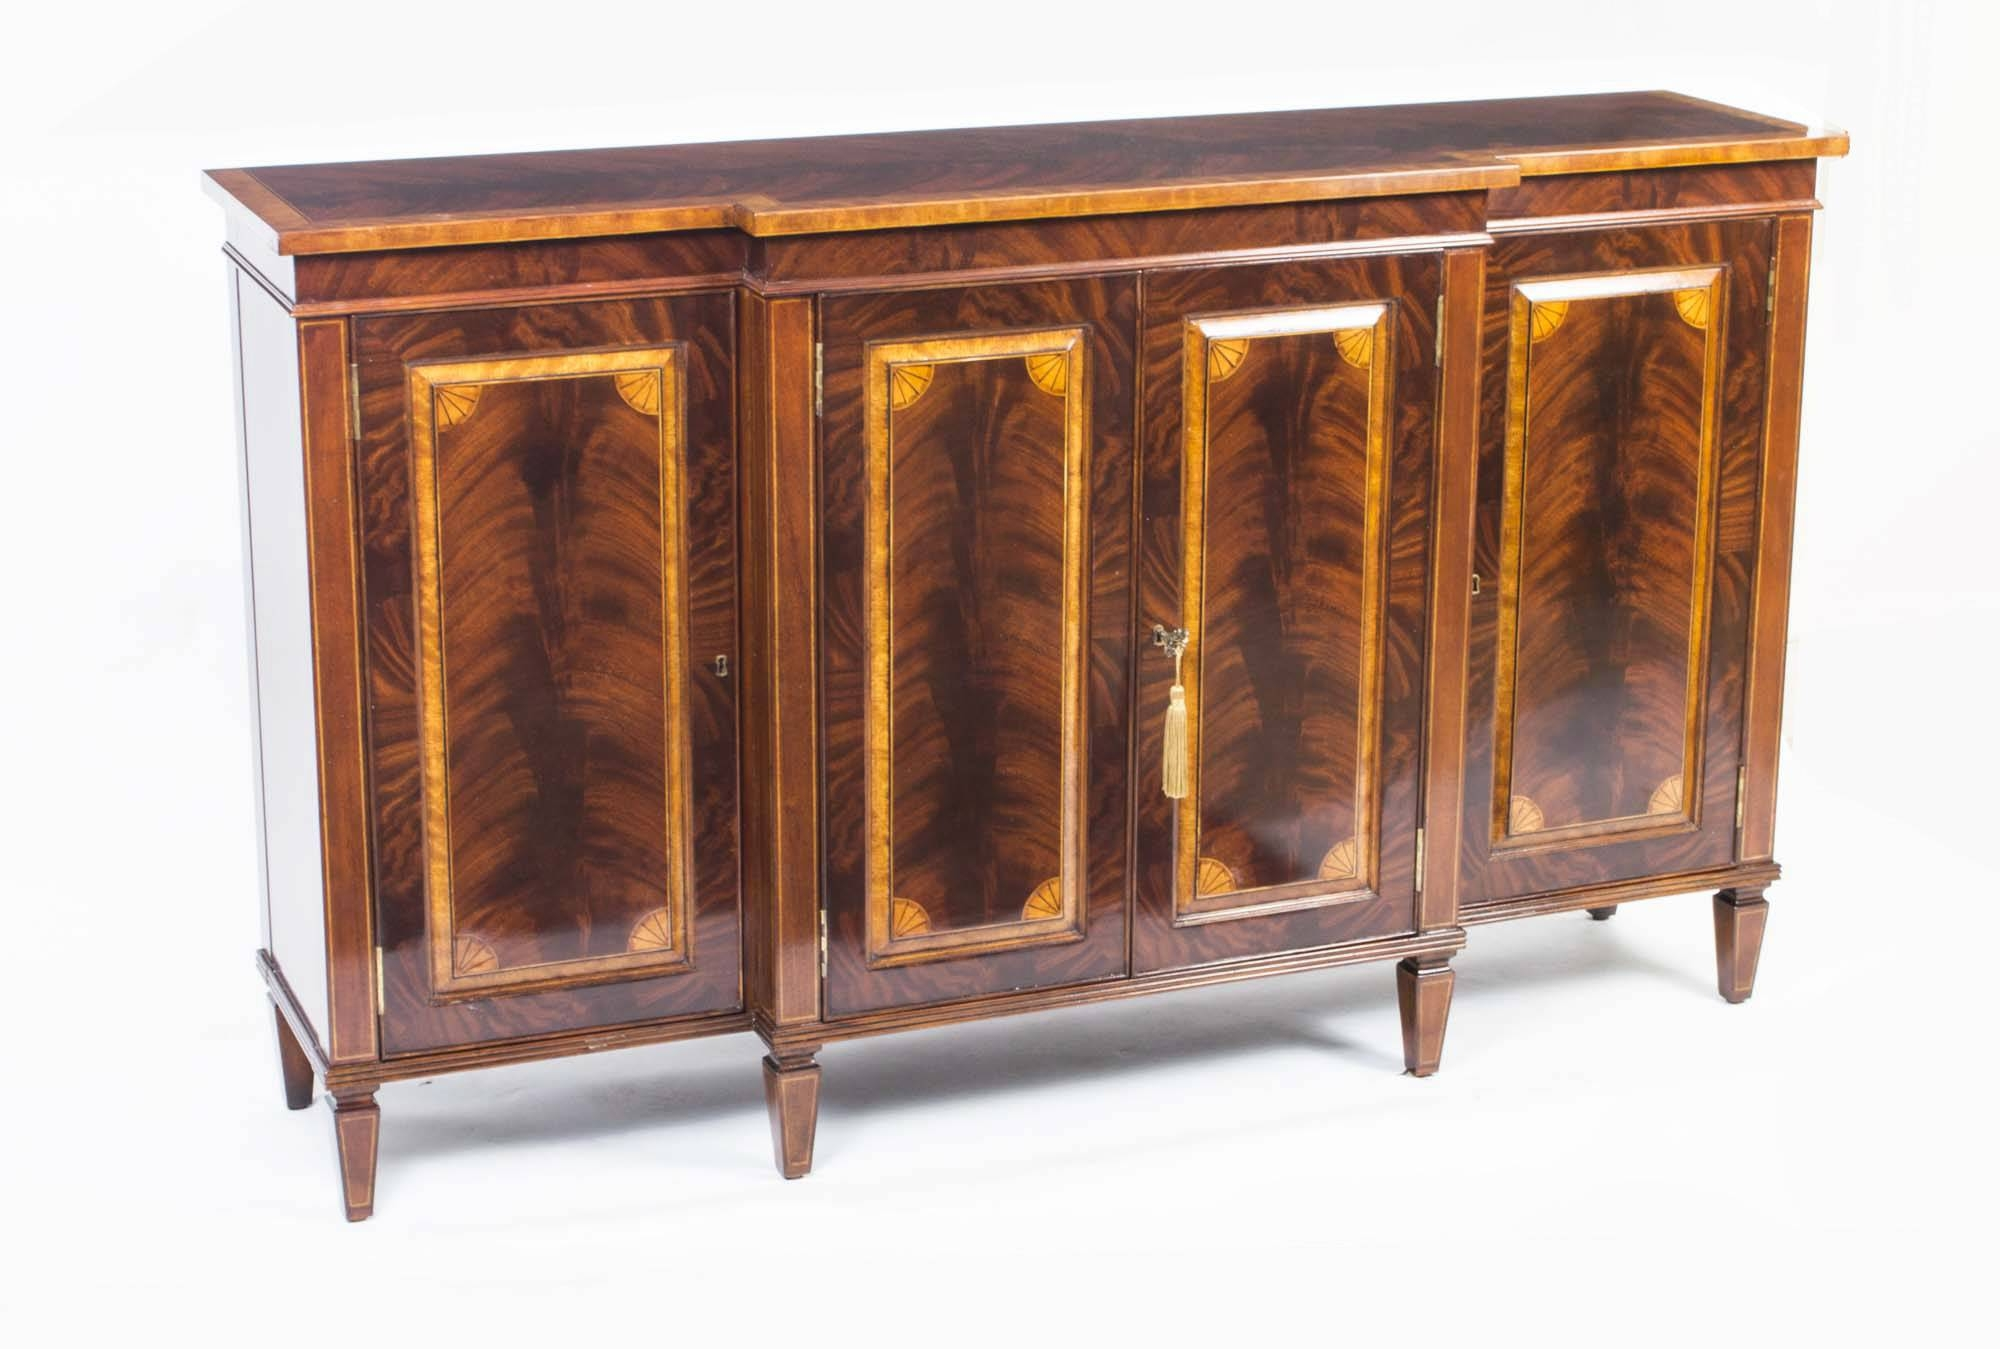 Flame Mahogany Four Door Sideboard Credenza Chiffonier Intended For Credenza Sideboards (View 5 of 15)